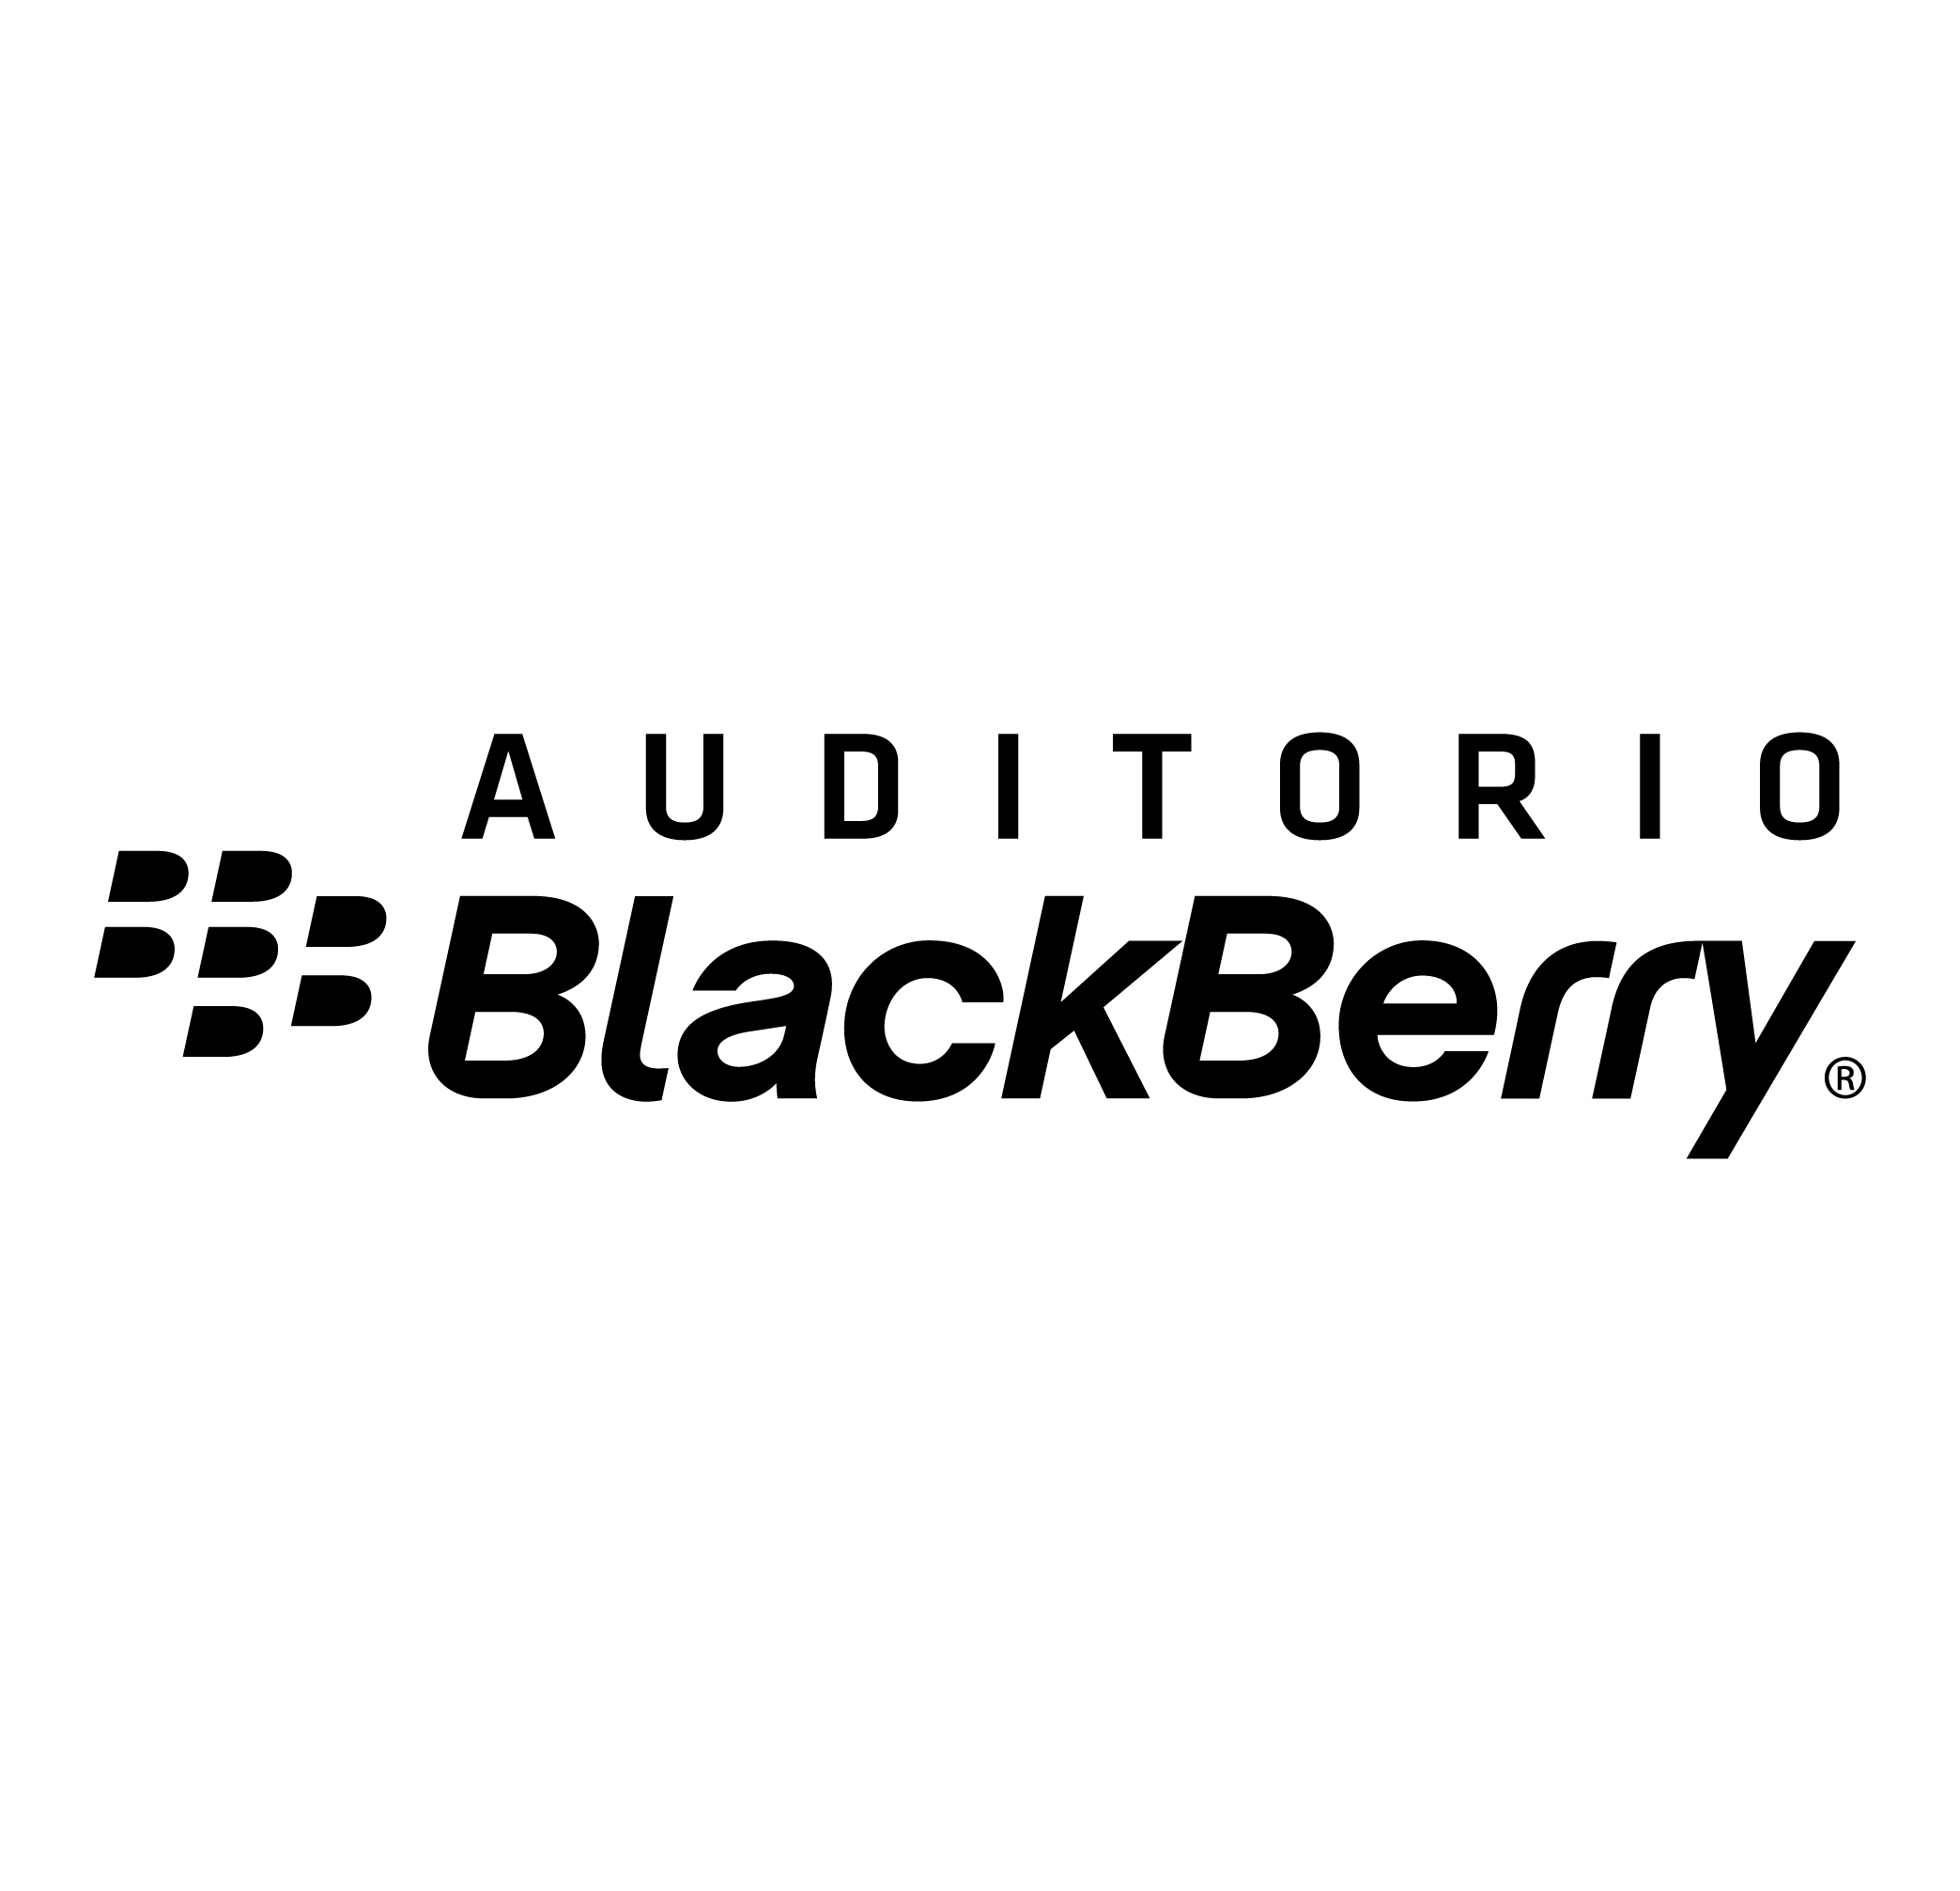 auditorioblackberry.com/